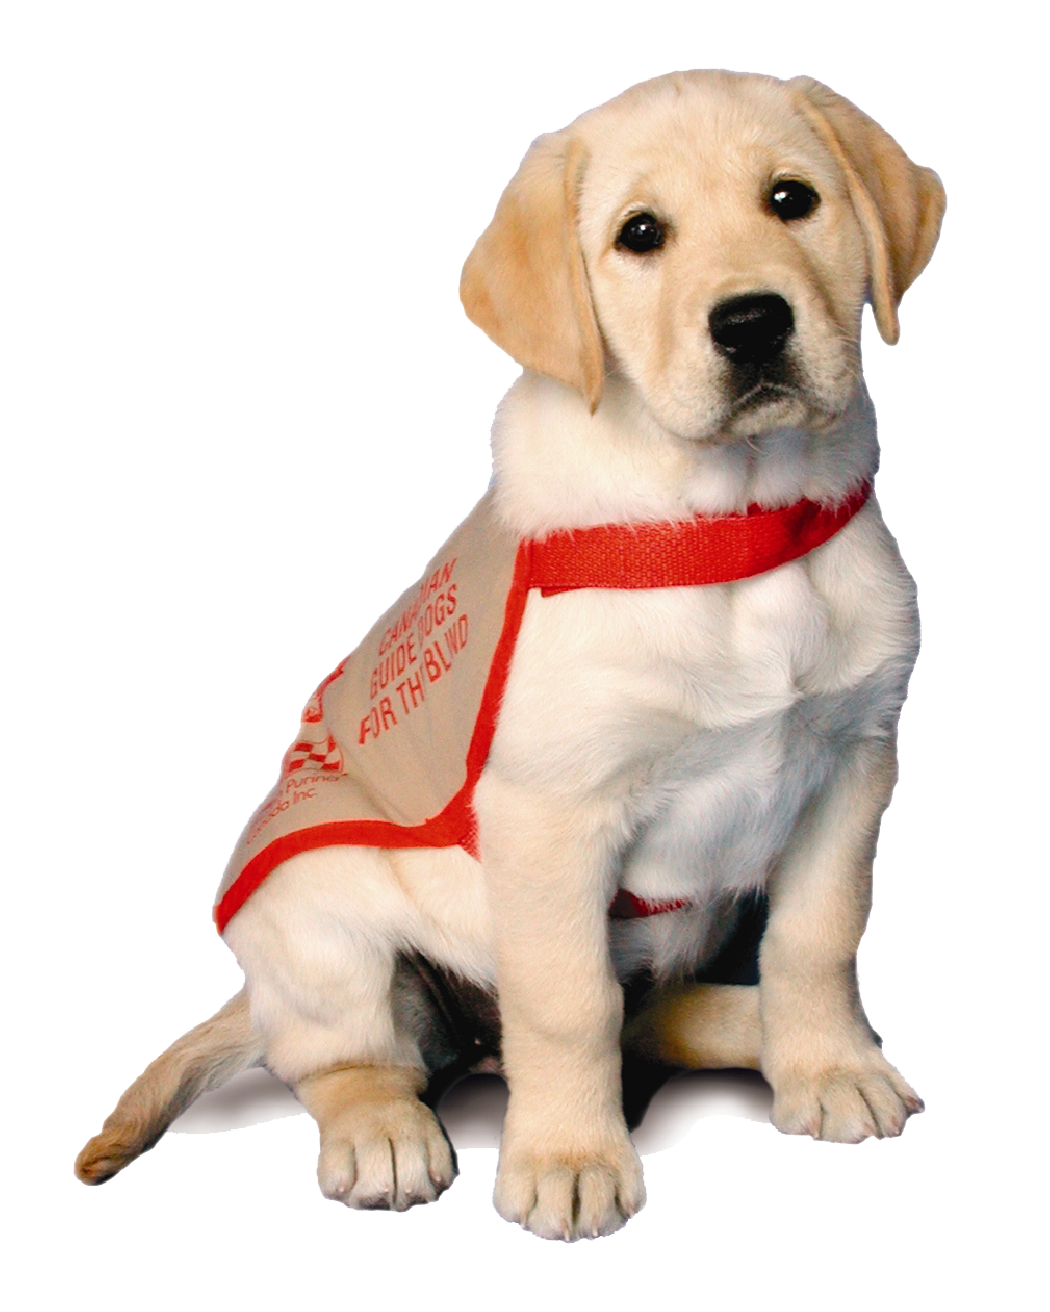 An image of a yellow labrador puppy wearing a red guide dog training jacket